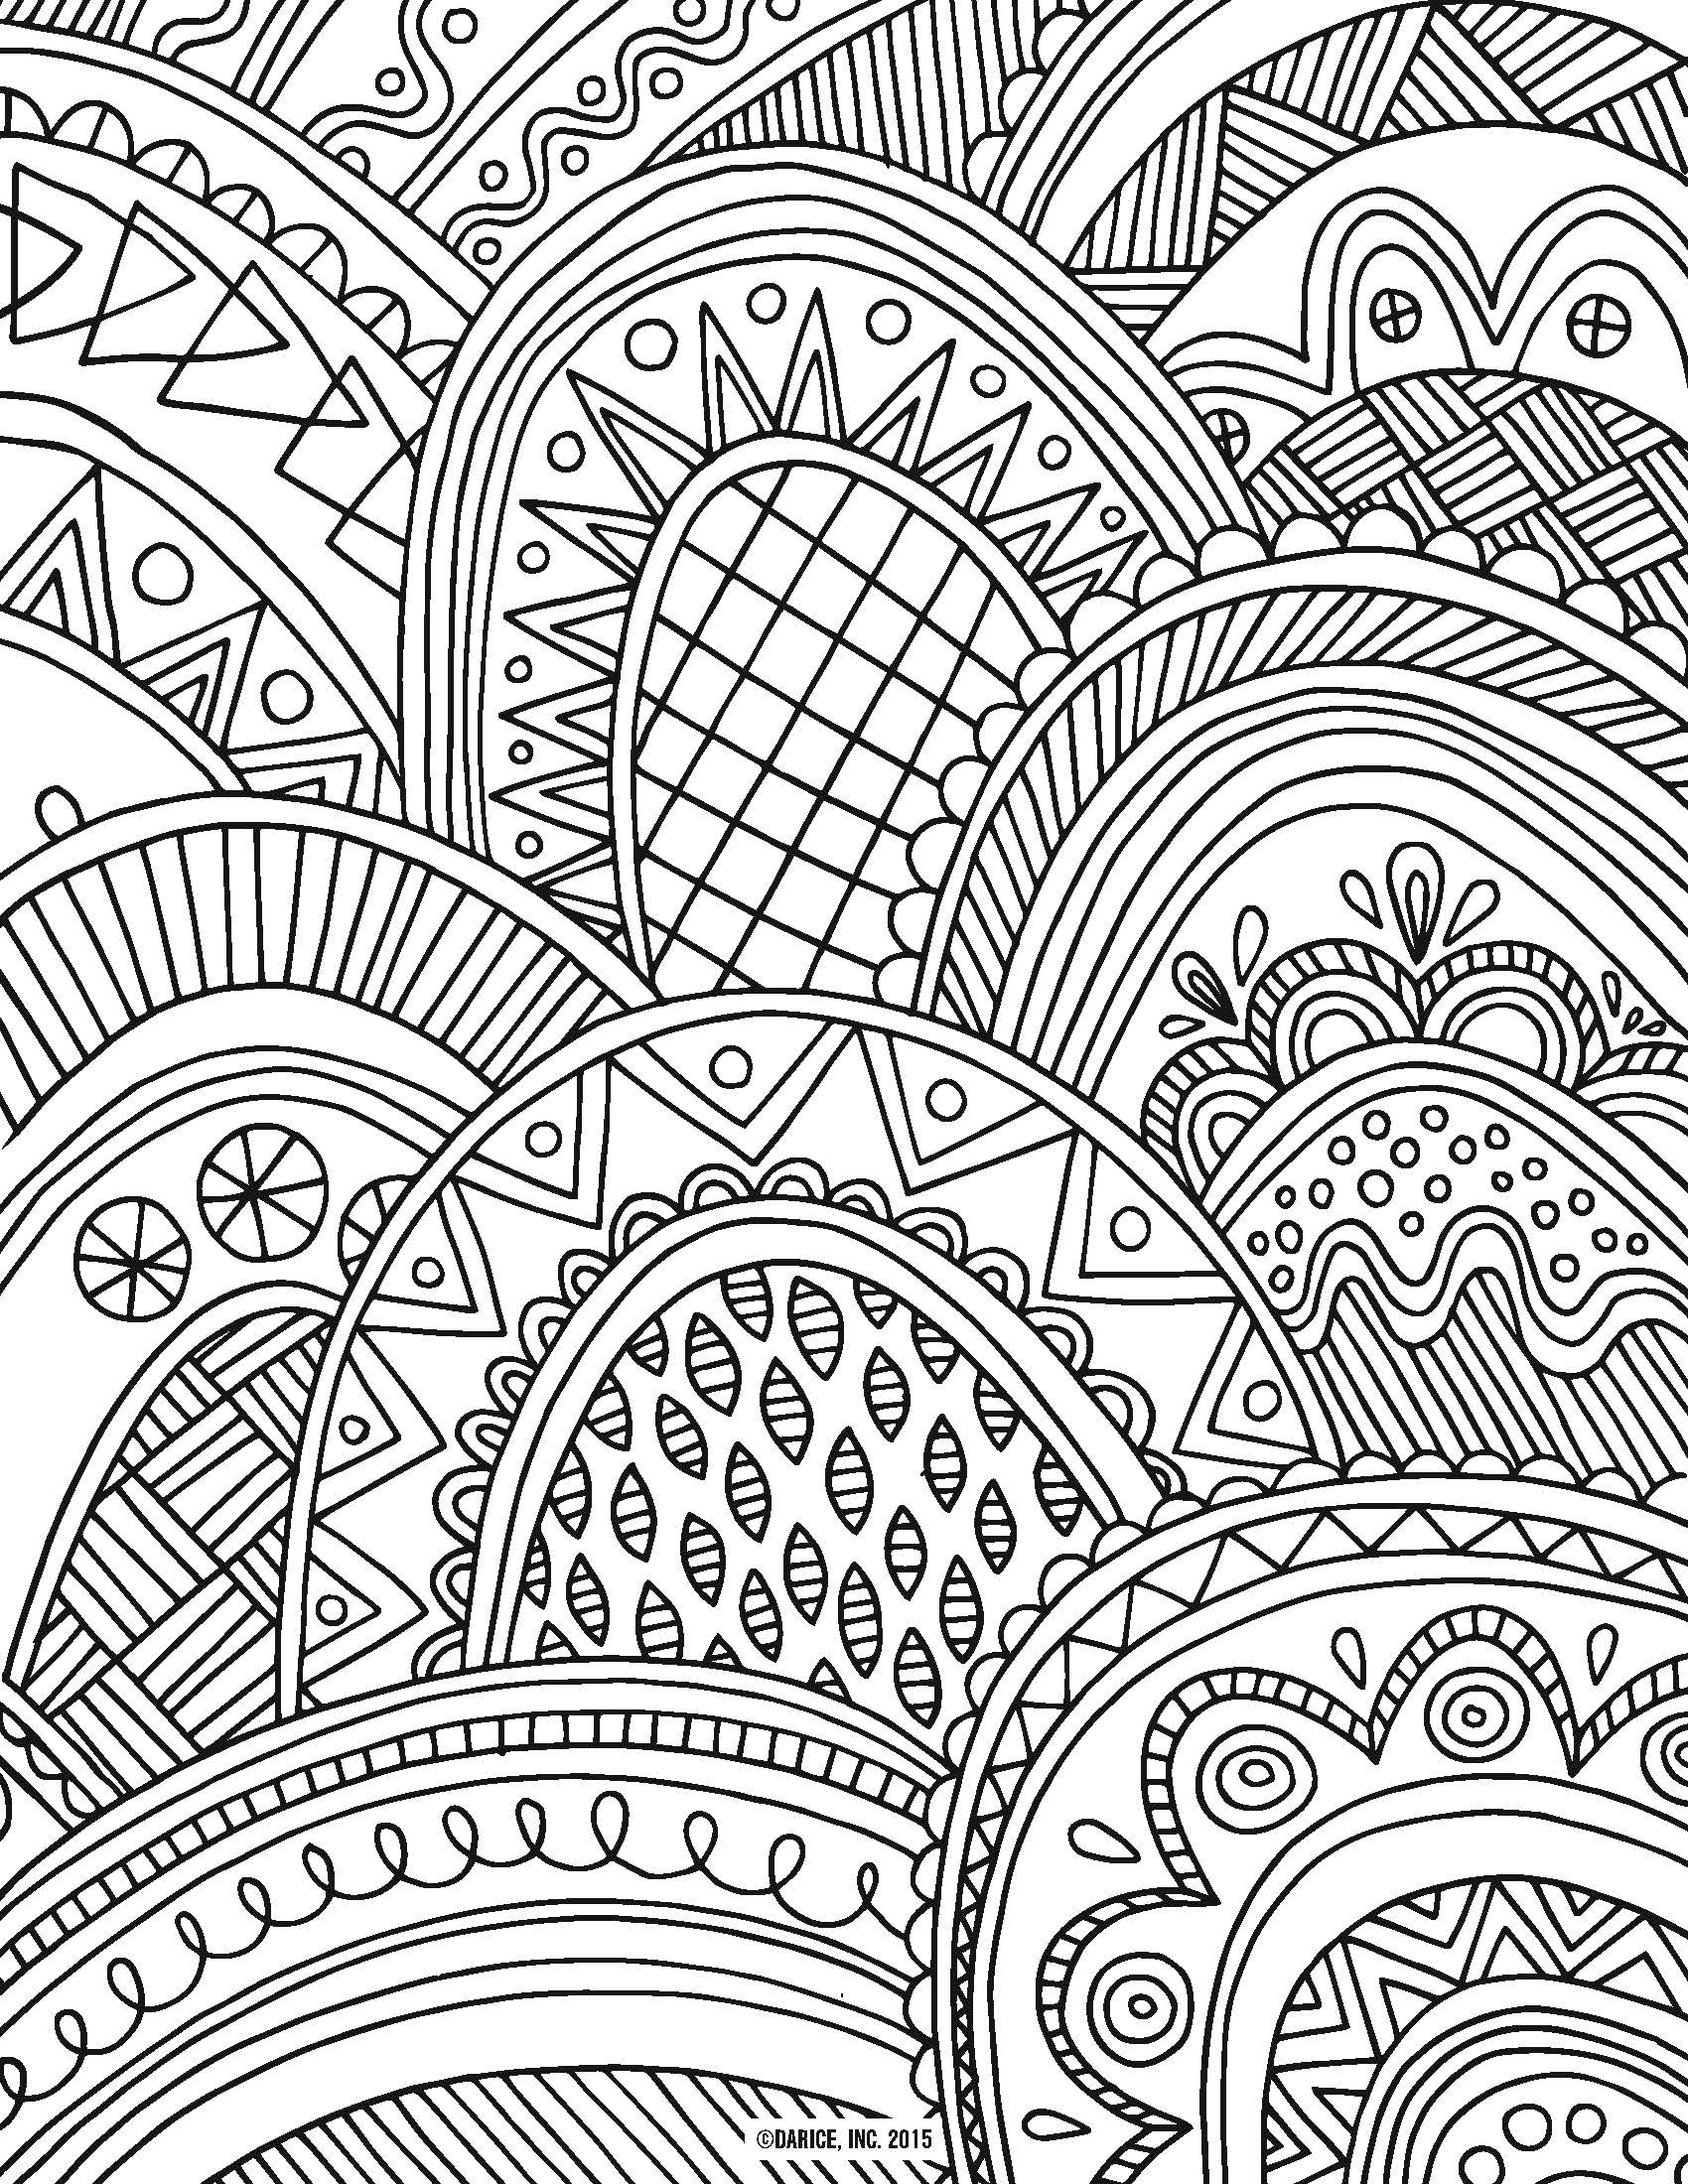 printable colouring pages 40 top free coloring pages we need fun colouring pages printable